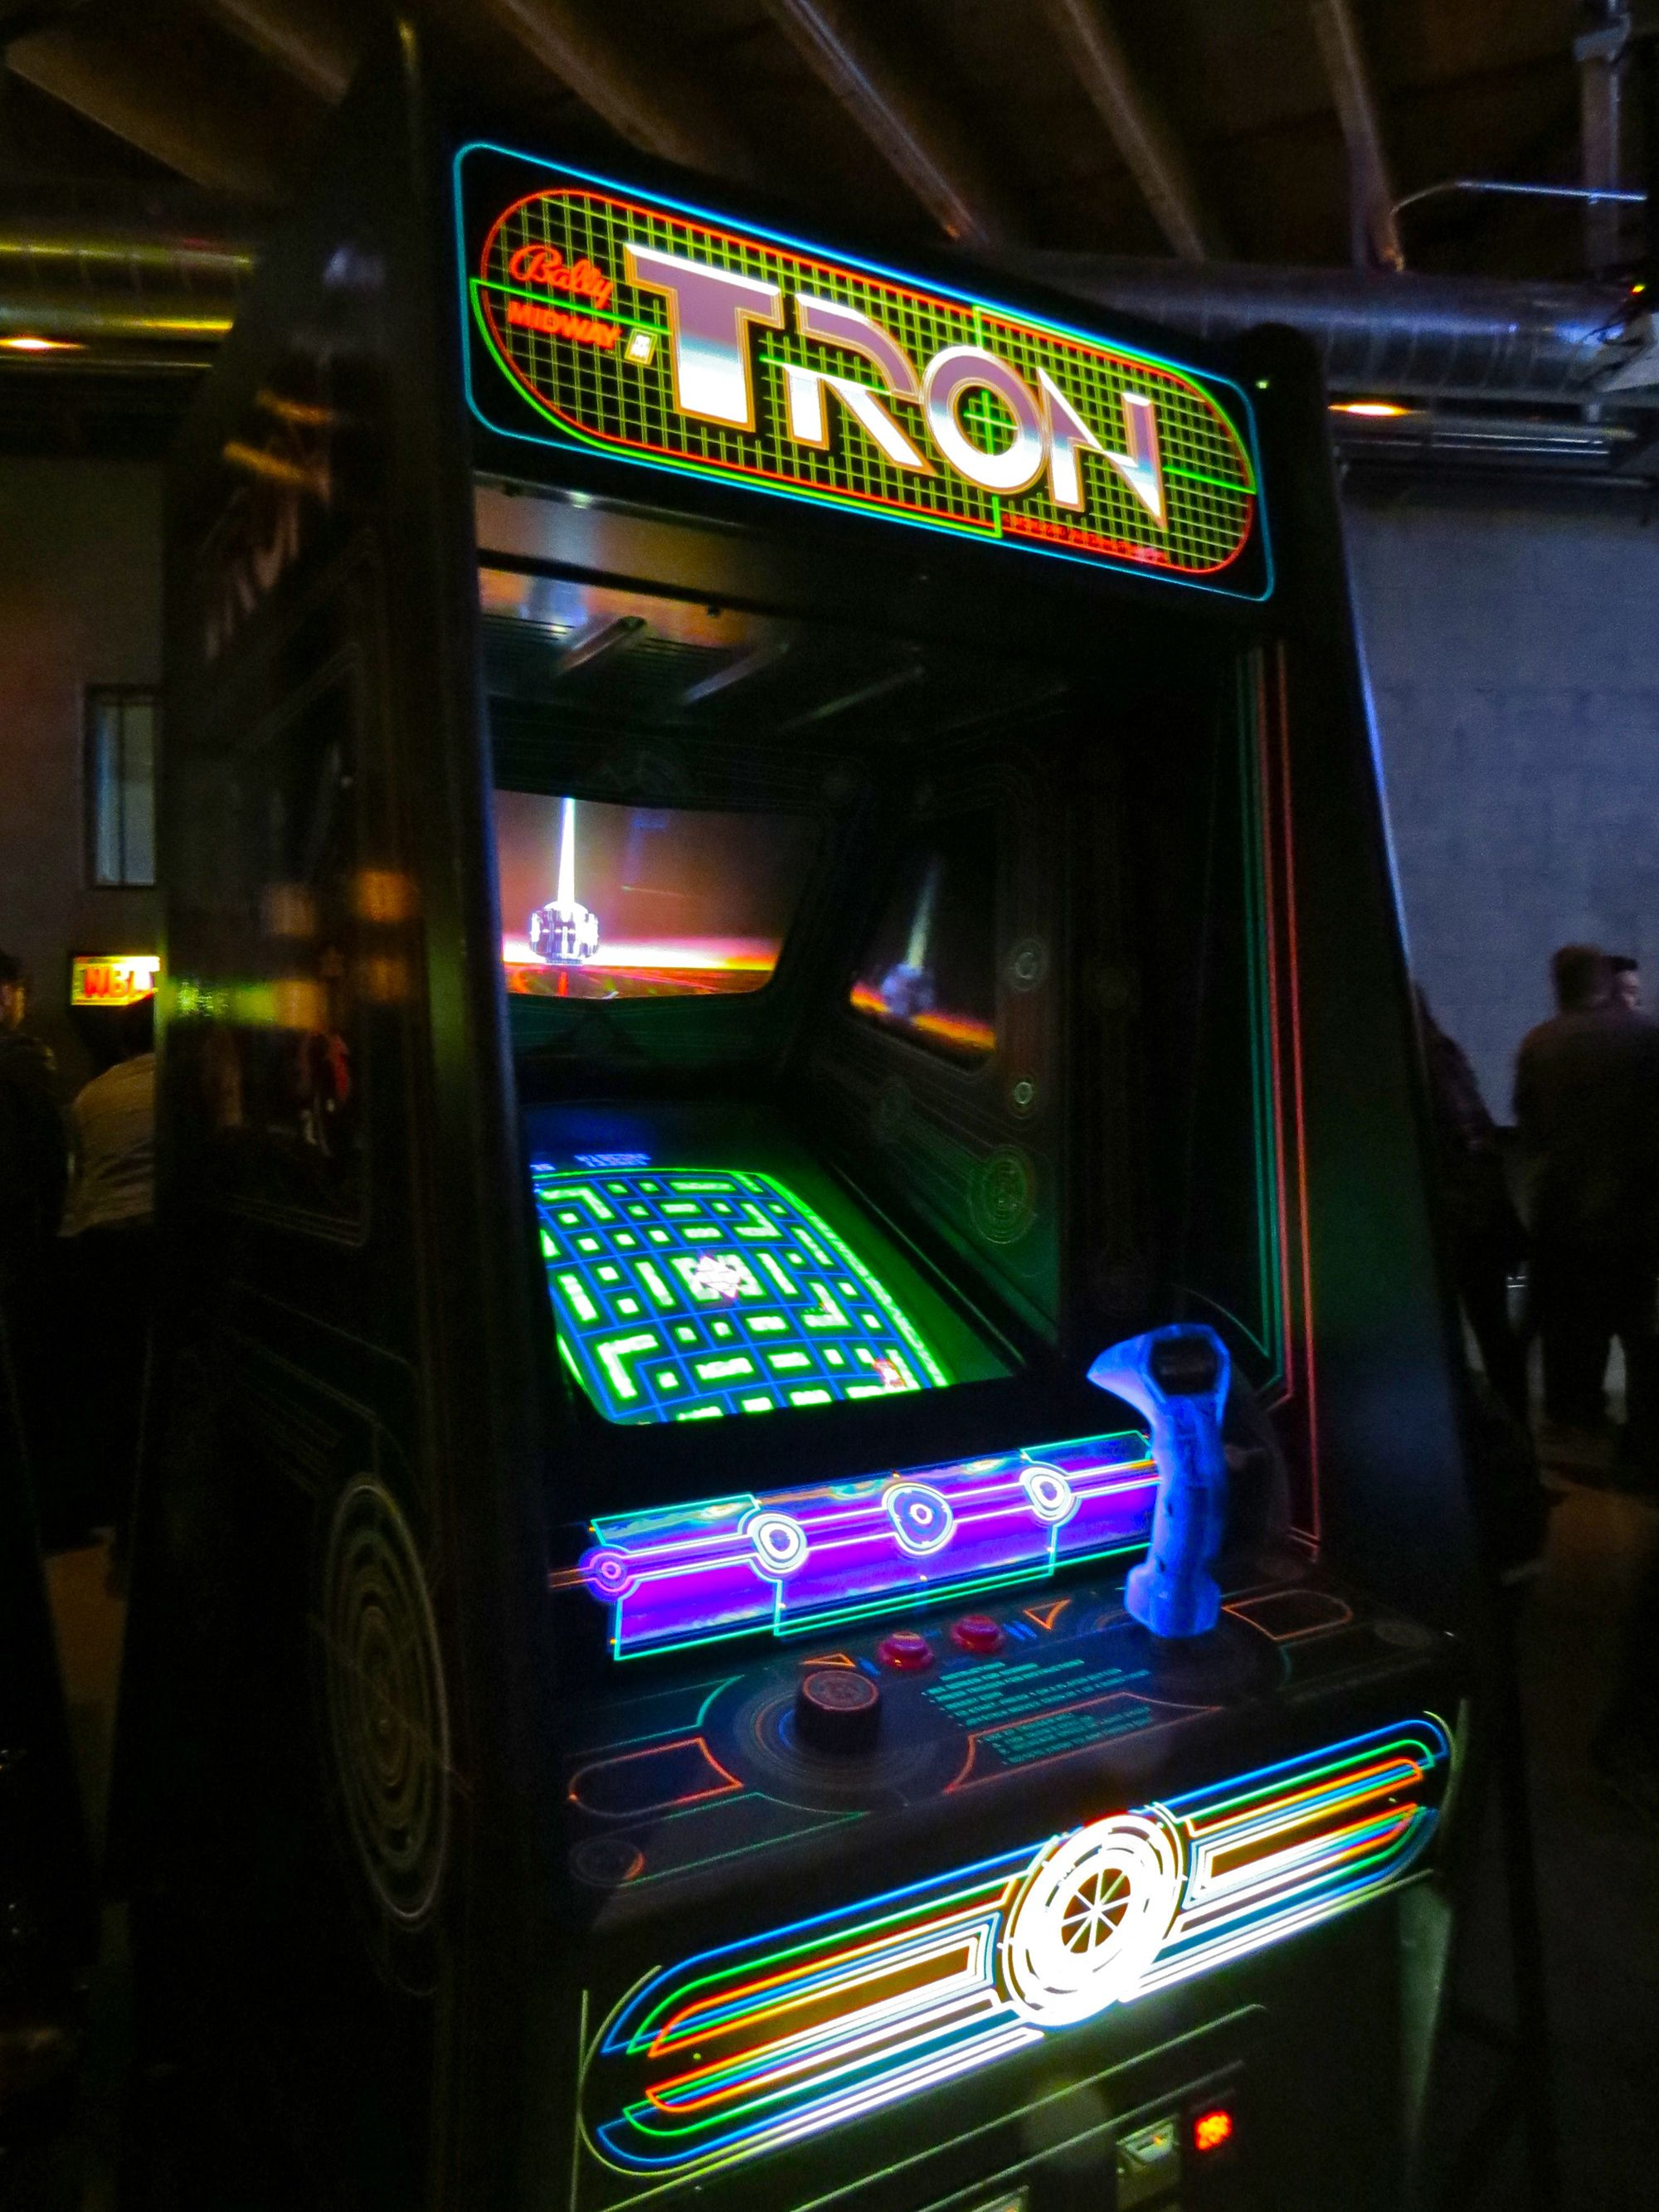 Tron is a coin-operated arcade video game manufactured and distributed by Bally Midway in 1982.